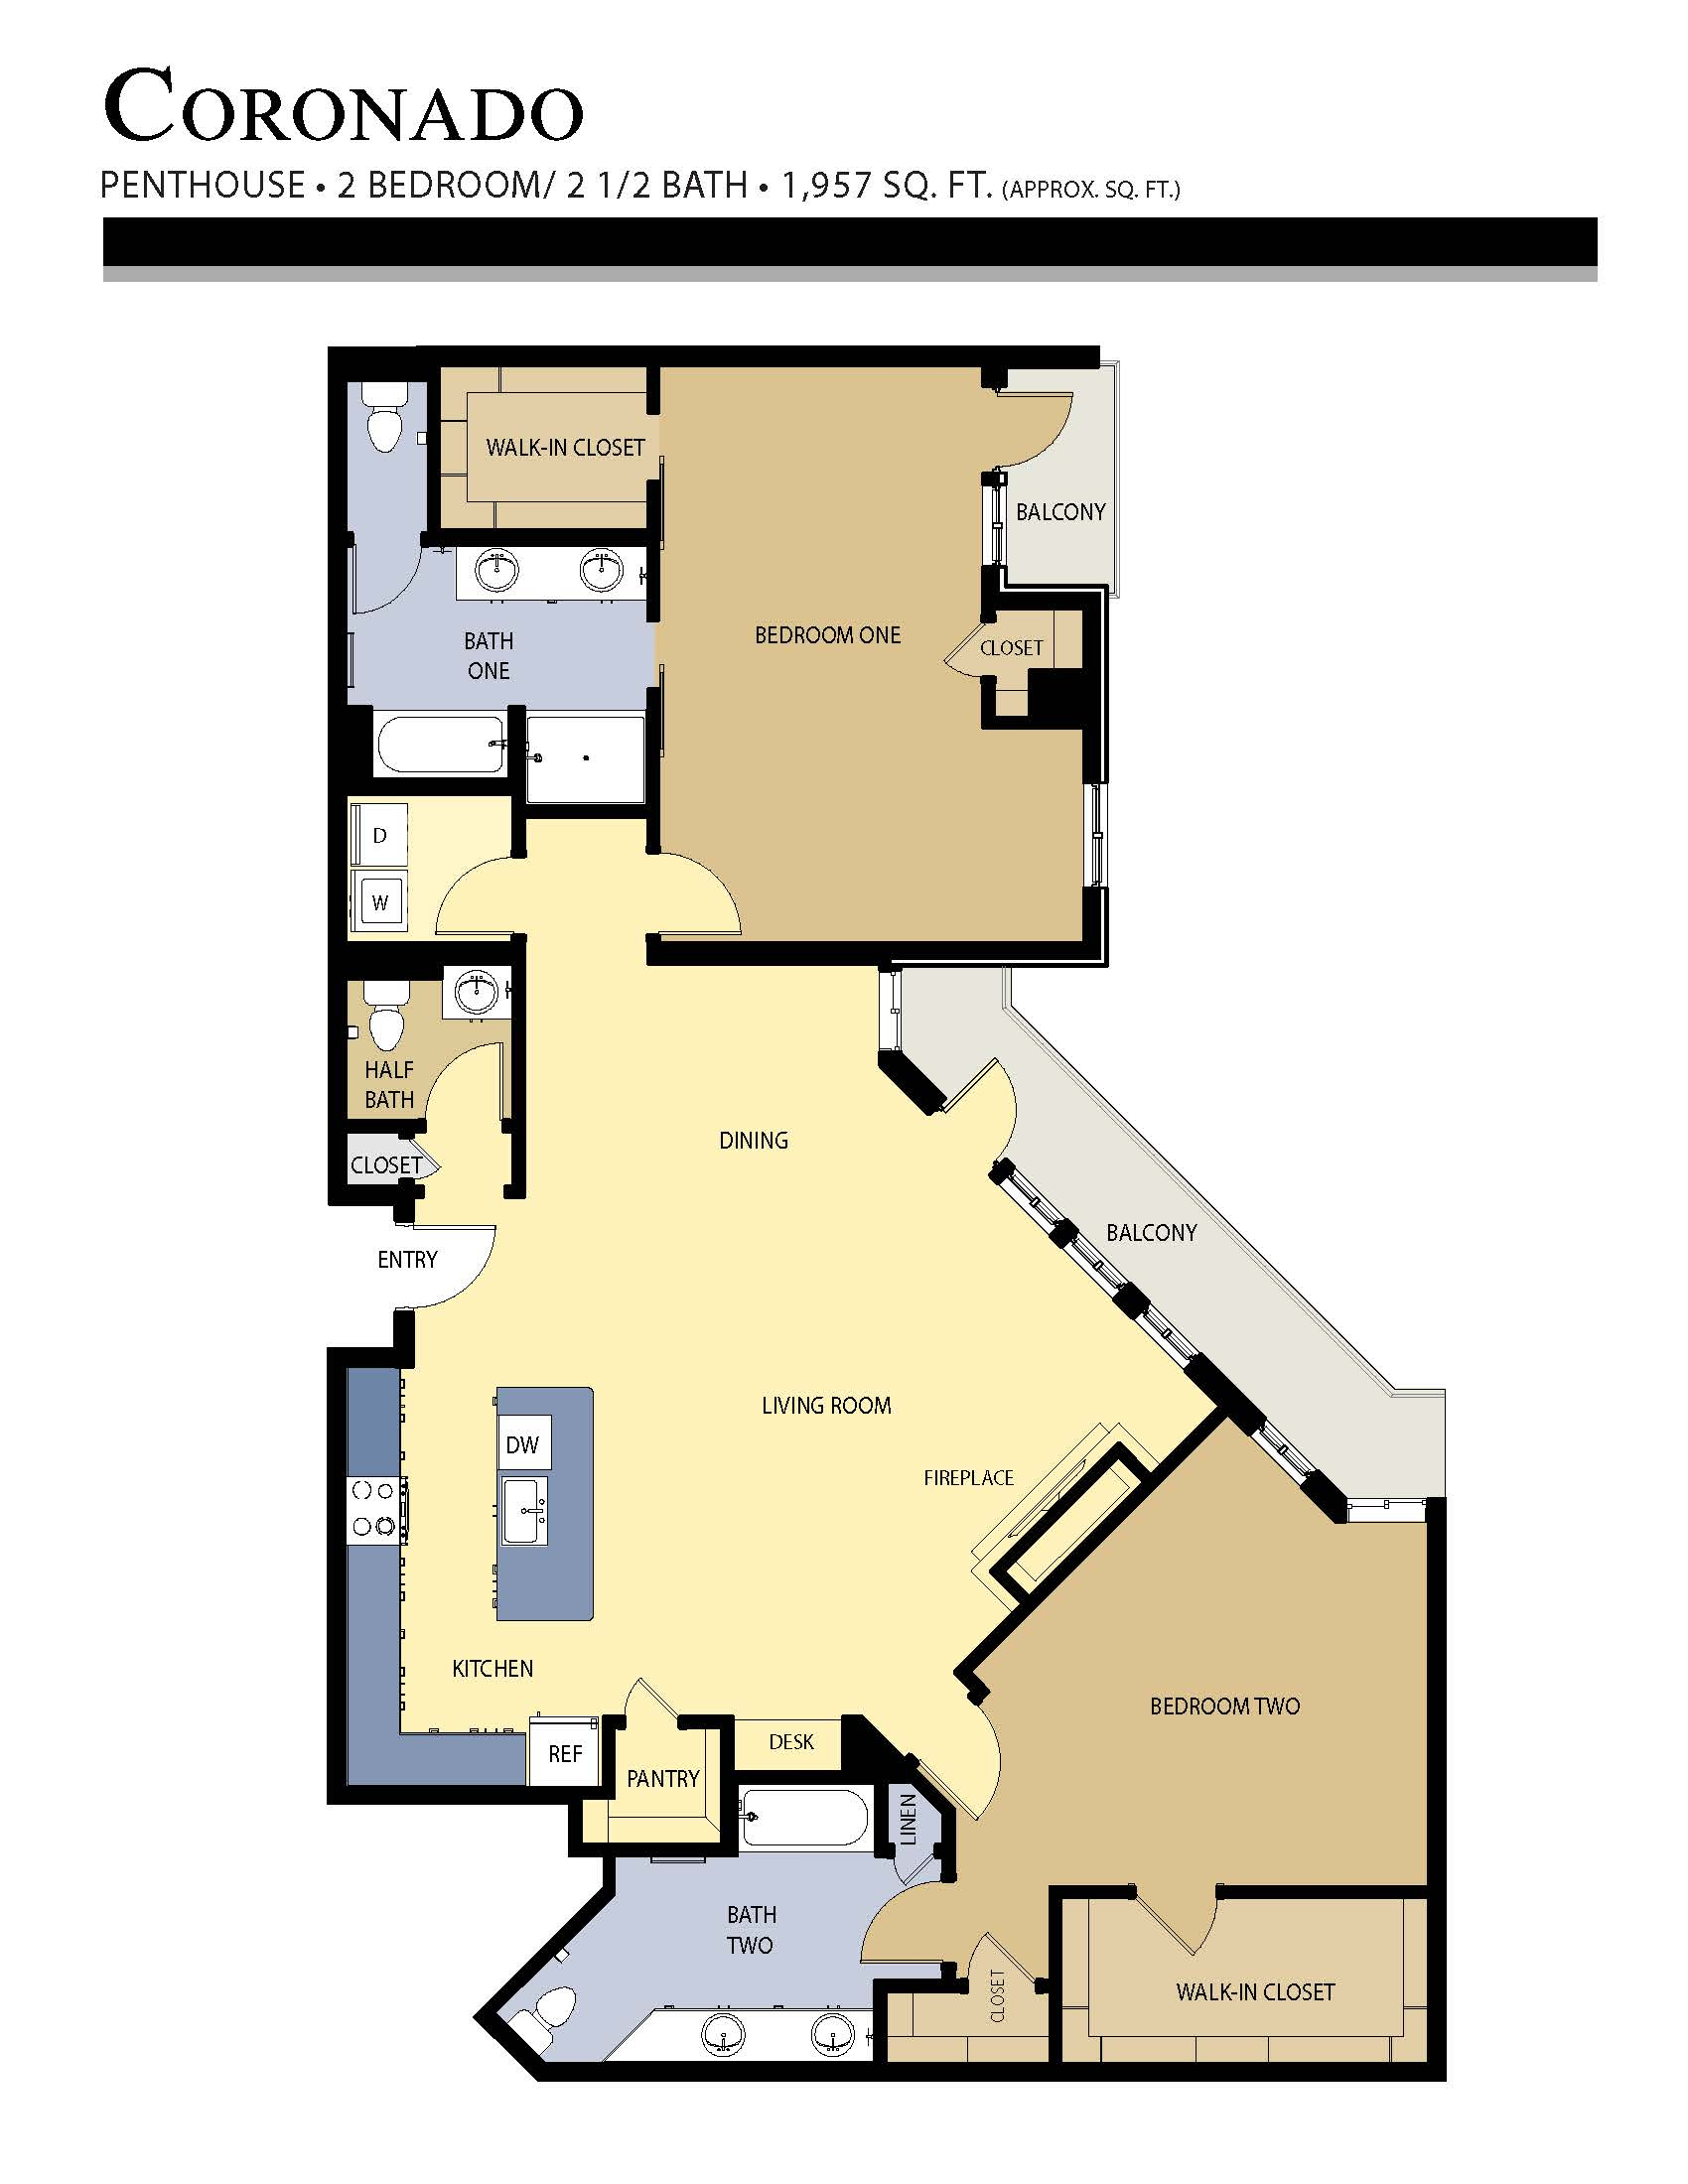 Coronado floor plan - 2 Bed / 2.5 Bath (1,957 Sq Ft)